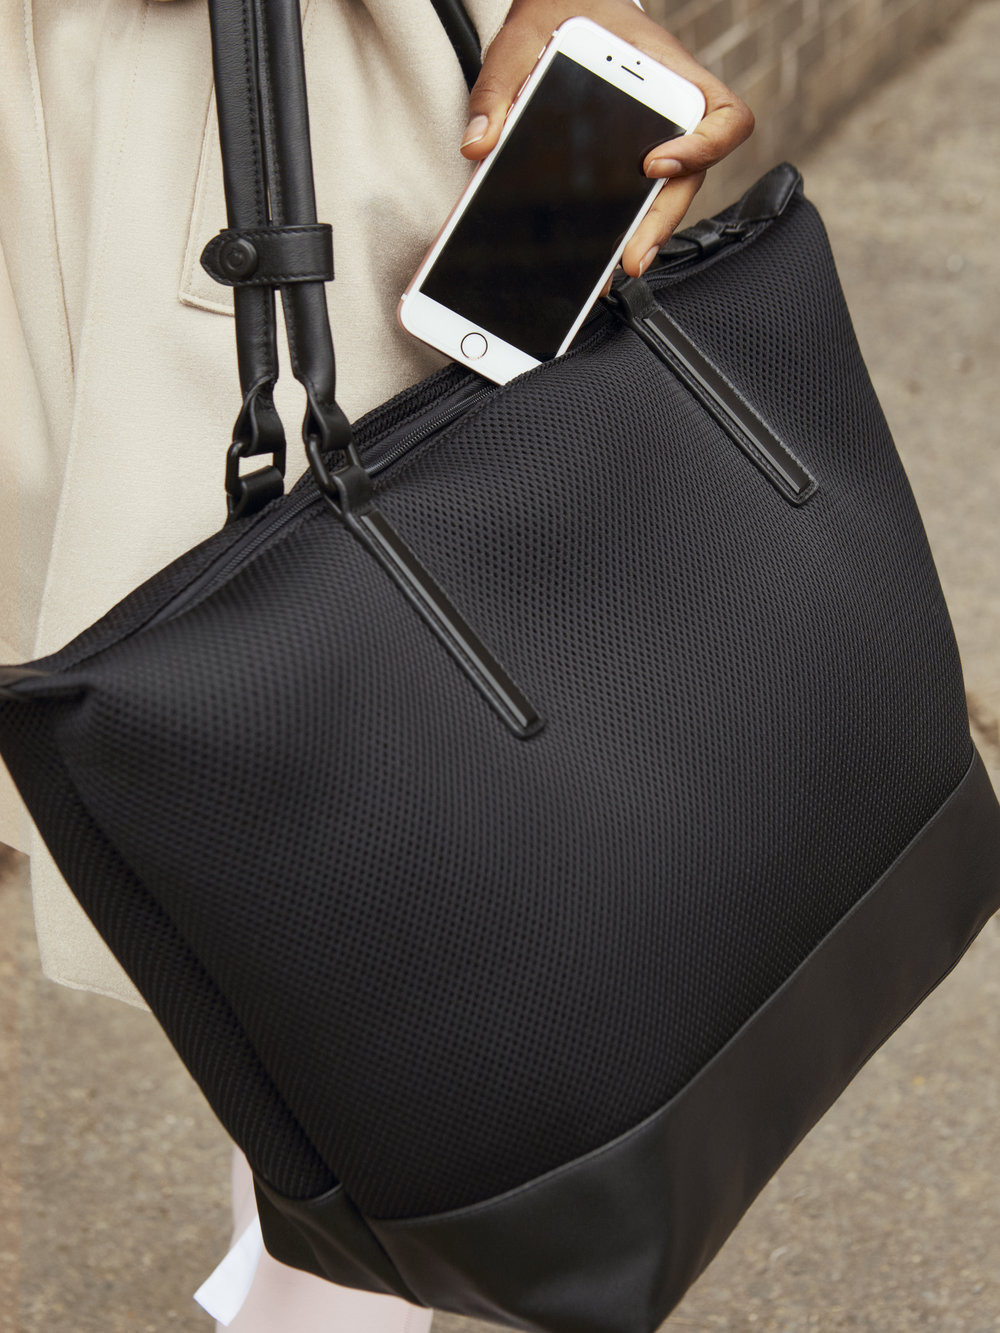 External pockets for on-the-go items like your keys and cell phone -